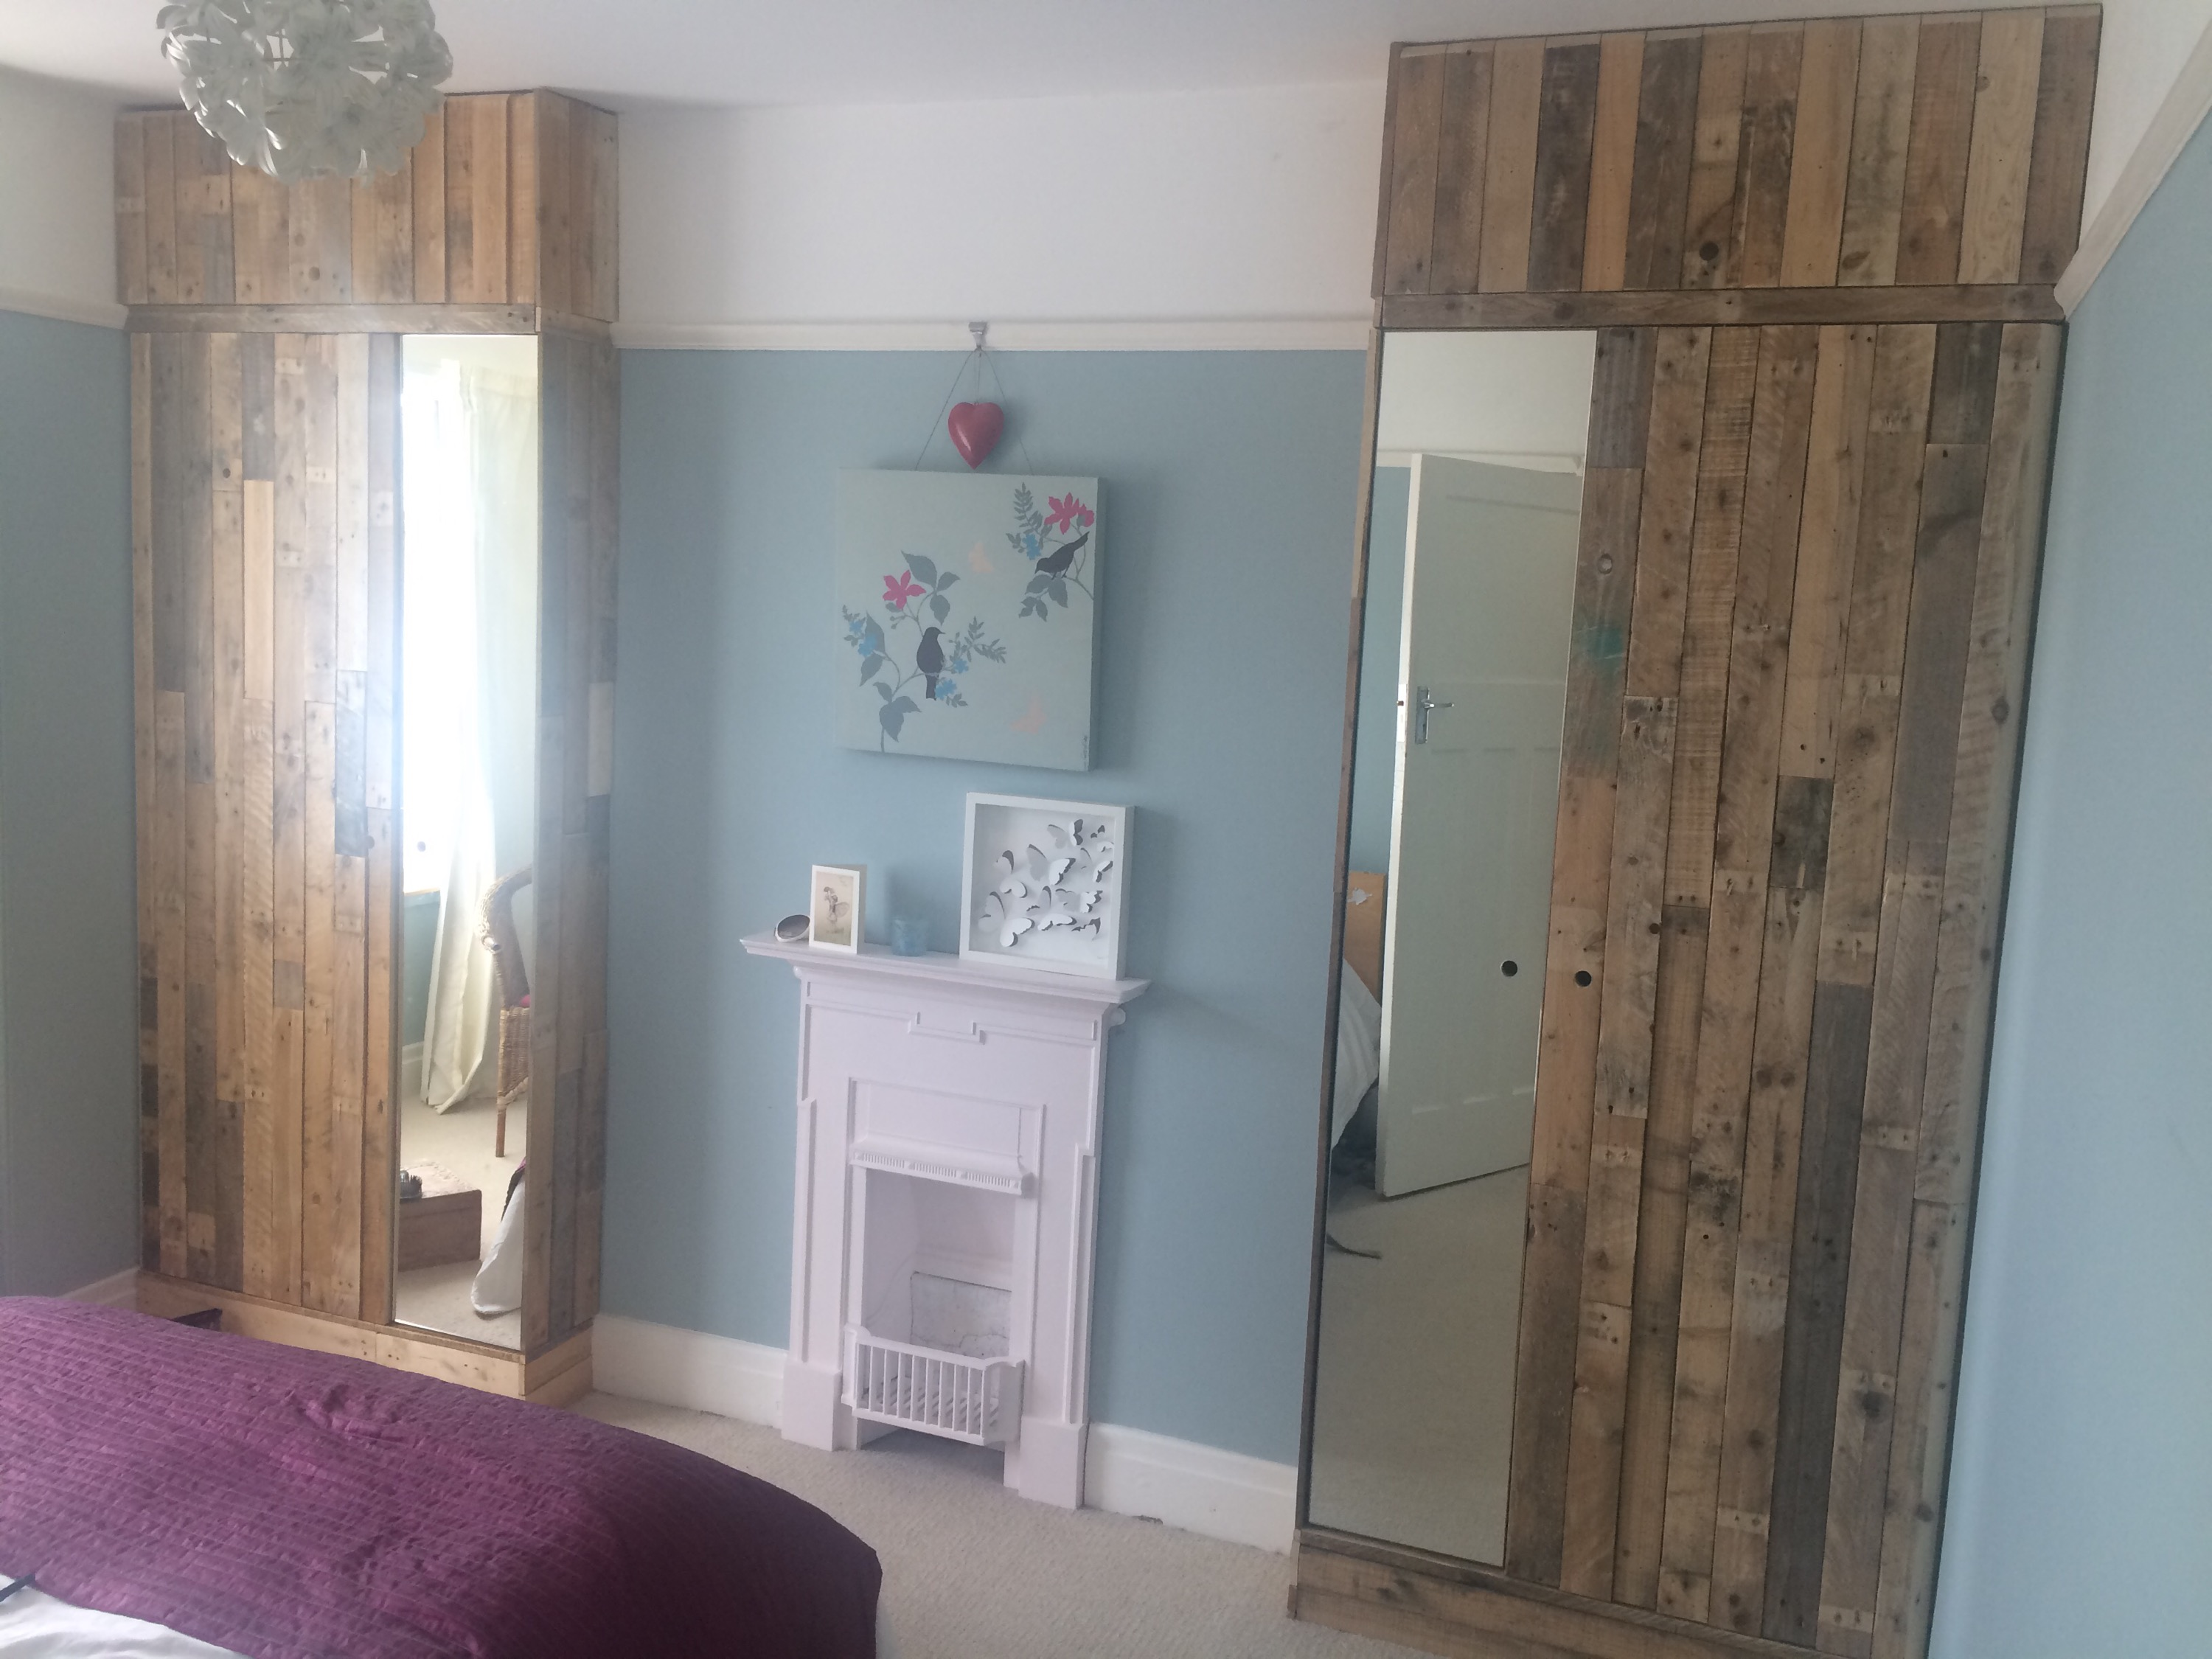 Bespoke wooden pallet and mirrored bedroom cupboards